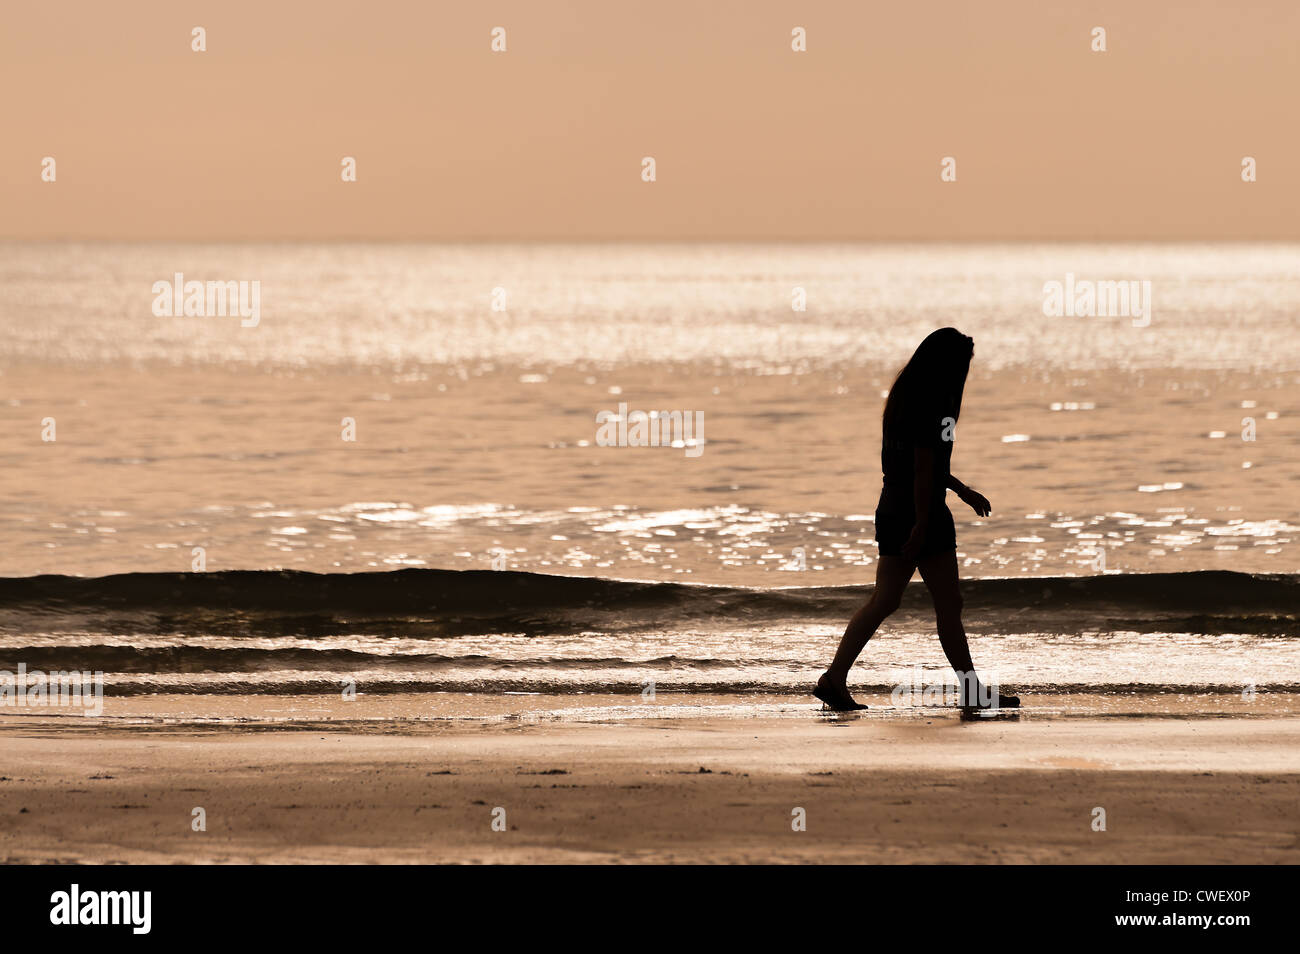 sillhouette woman walking on the beach - Stock Image